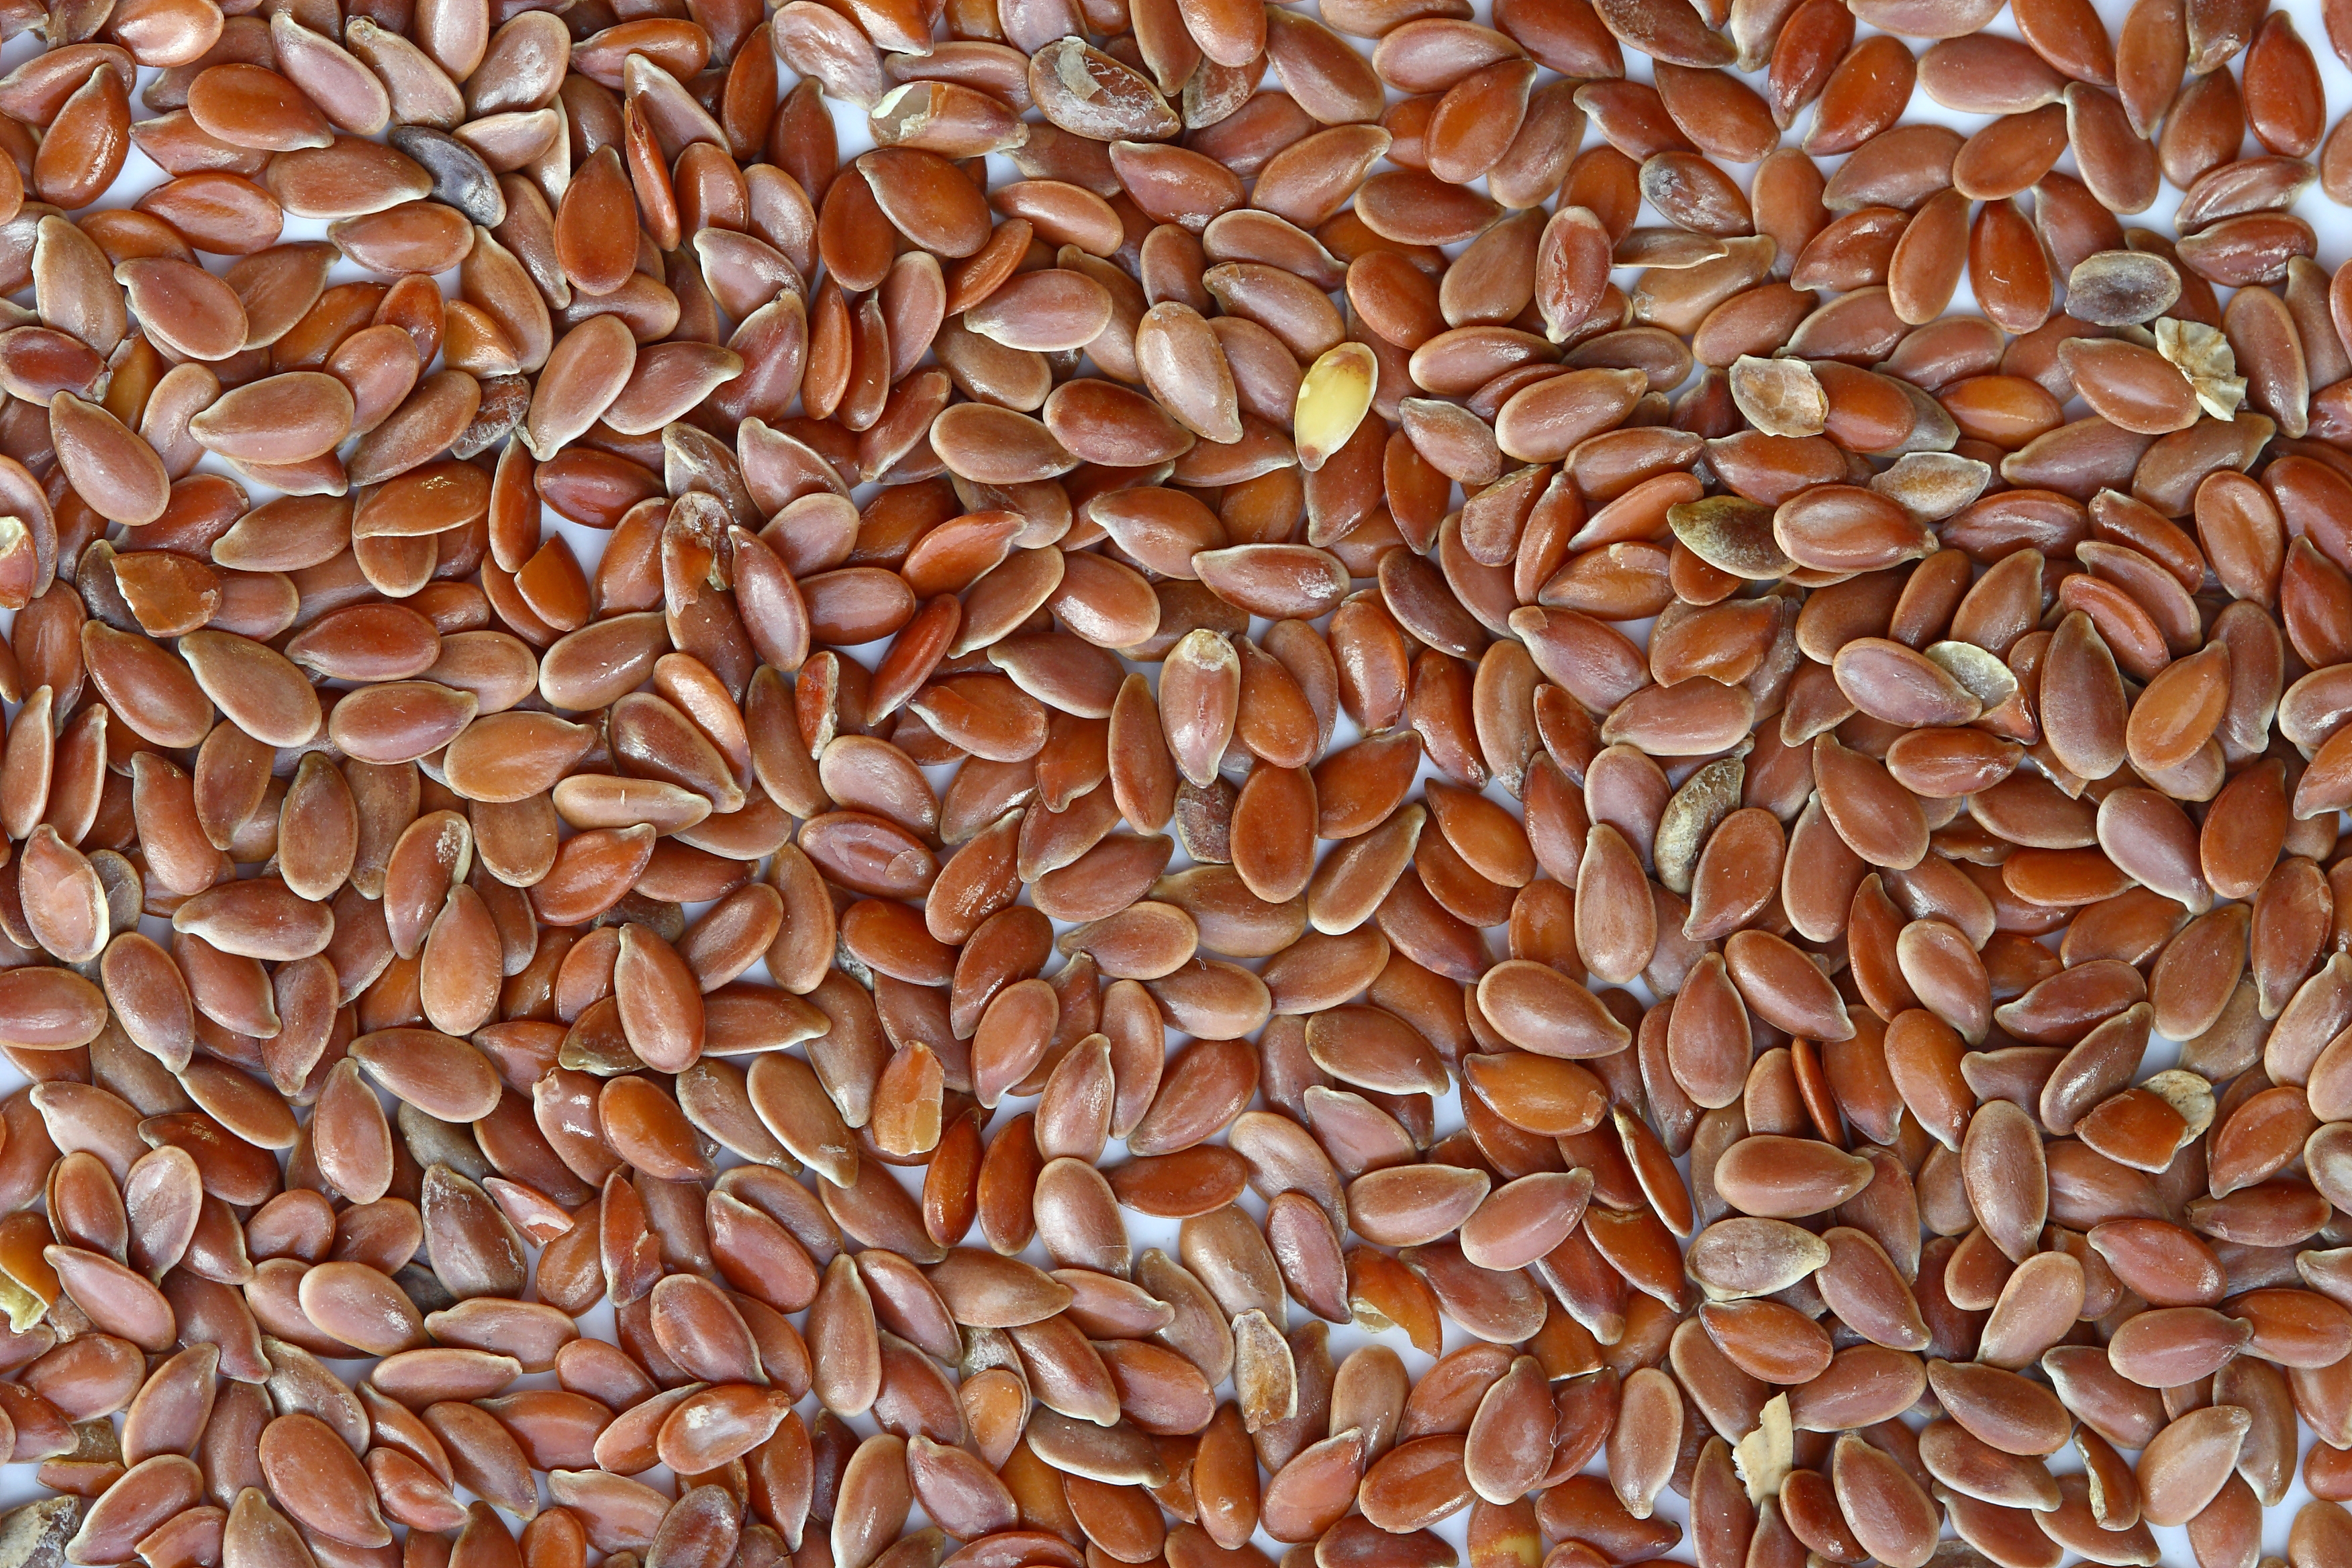 Flax seeds contain Omega-3 Fatty acids, and are an important supplement for wellness and healthy aging